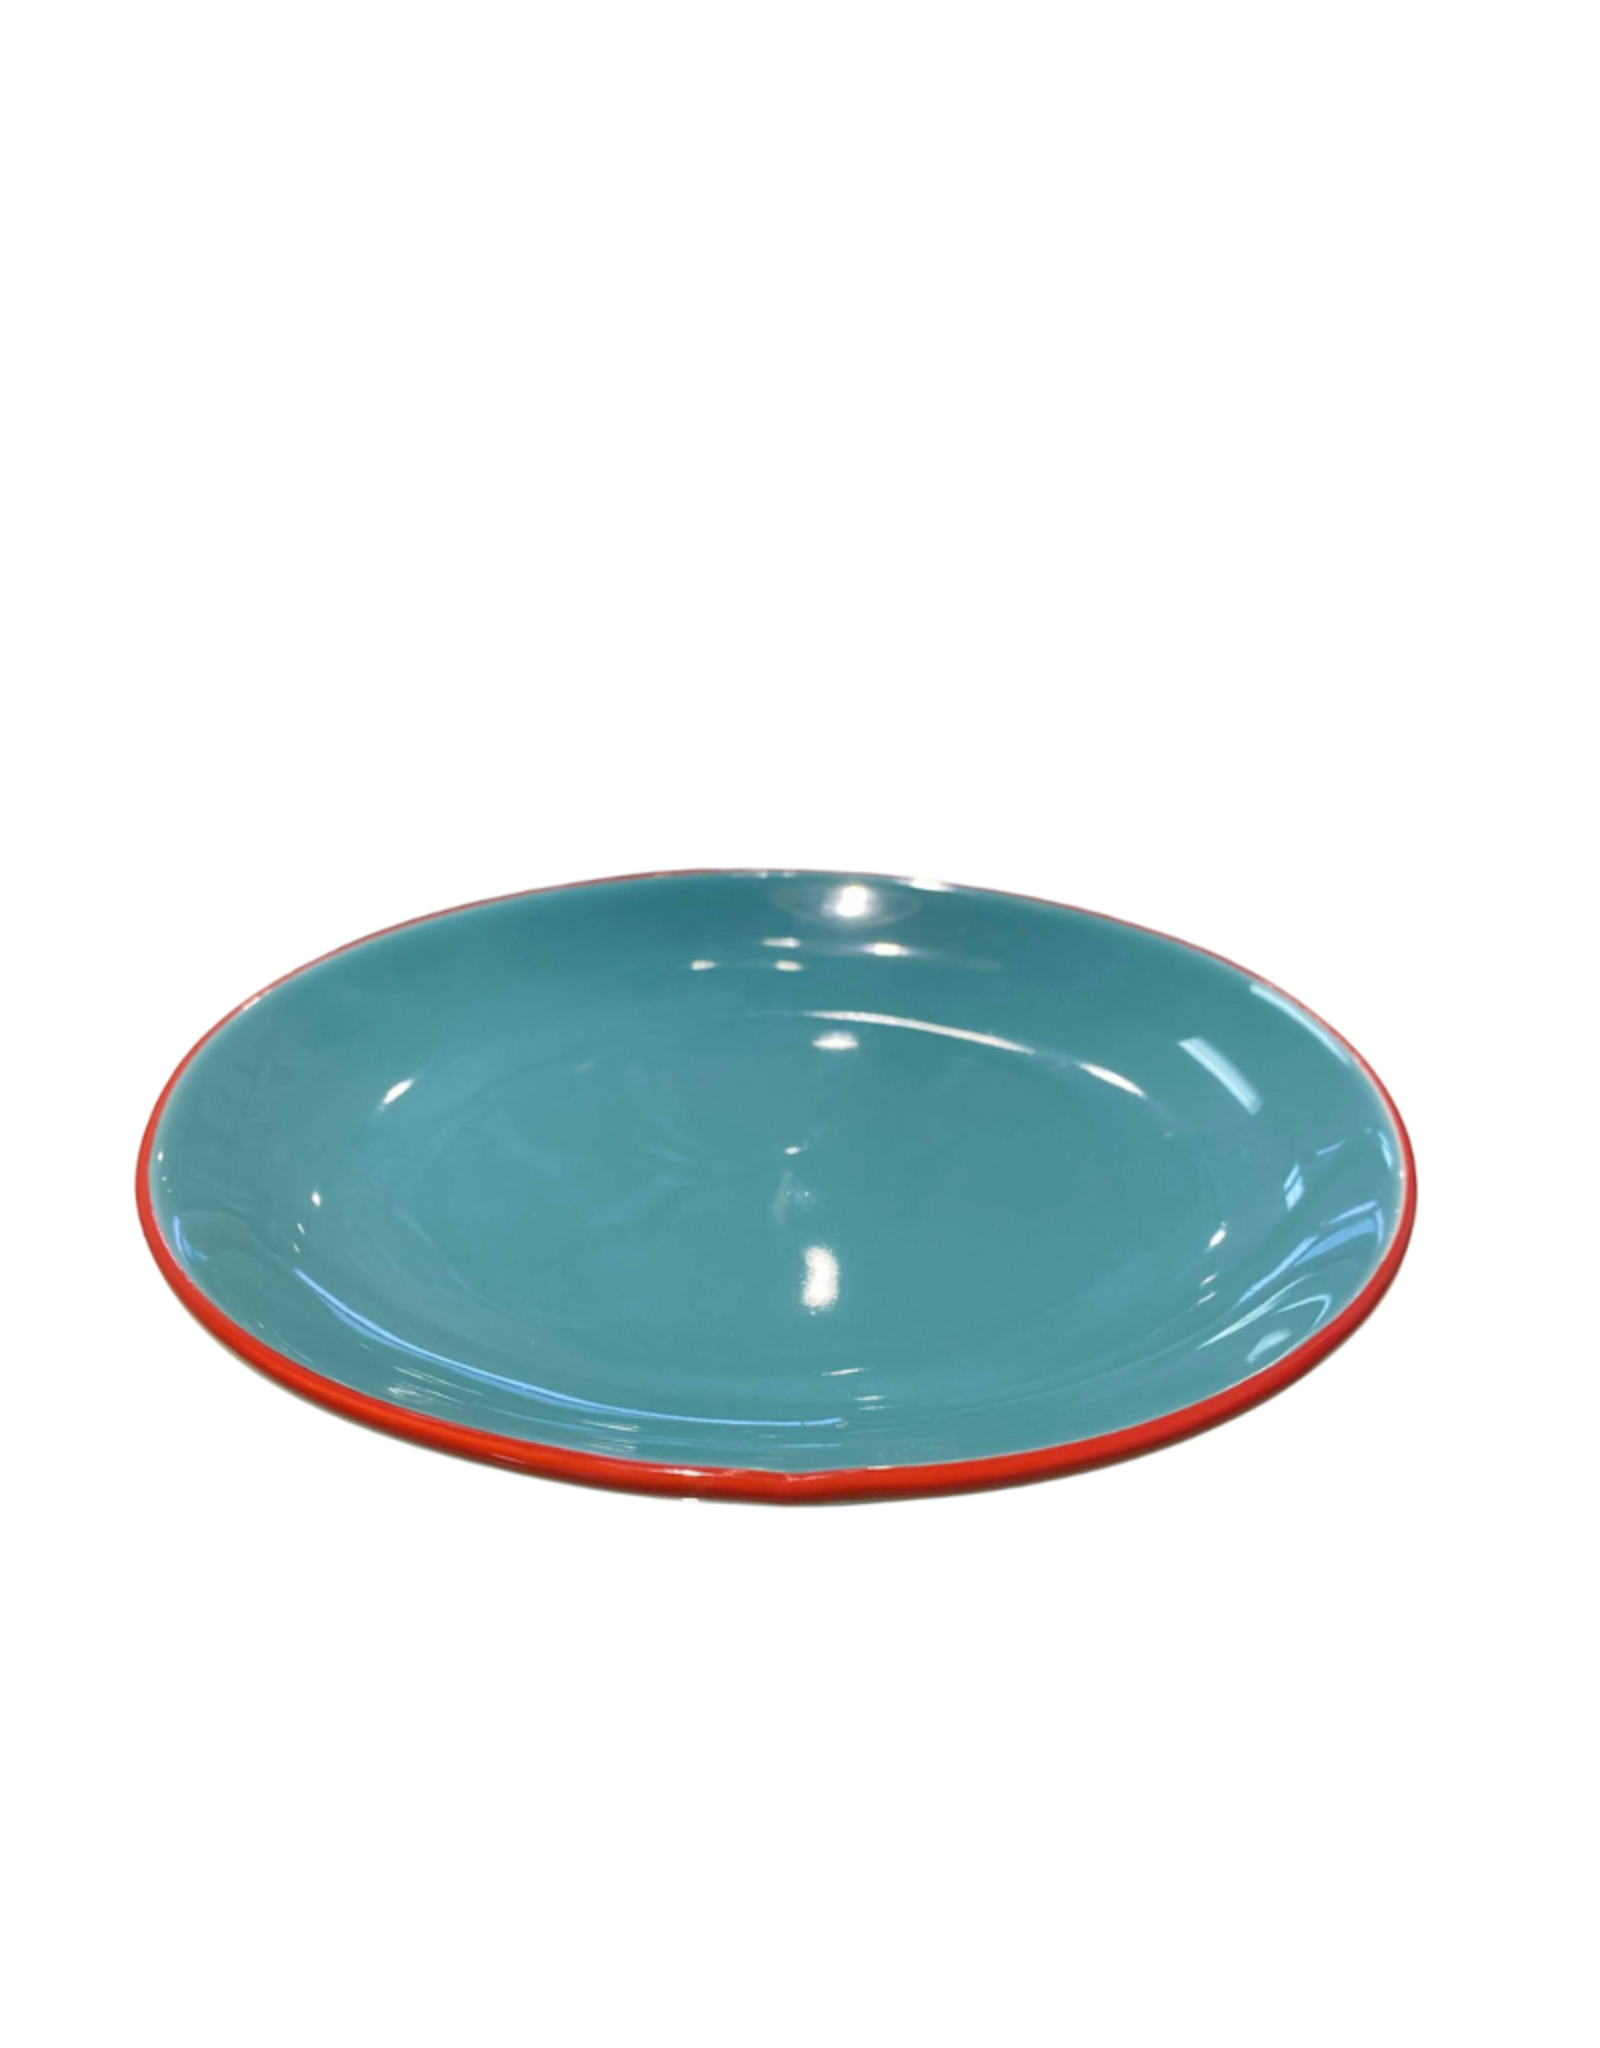 Eco Fair Pottery Plate Turquoise